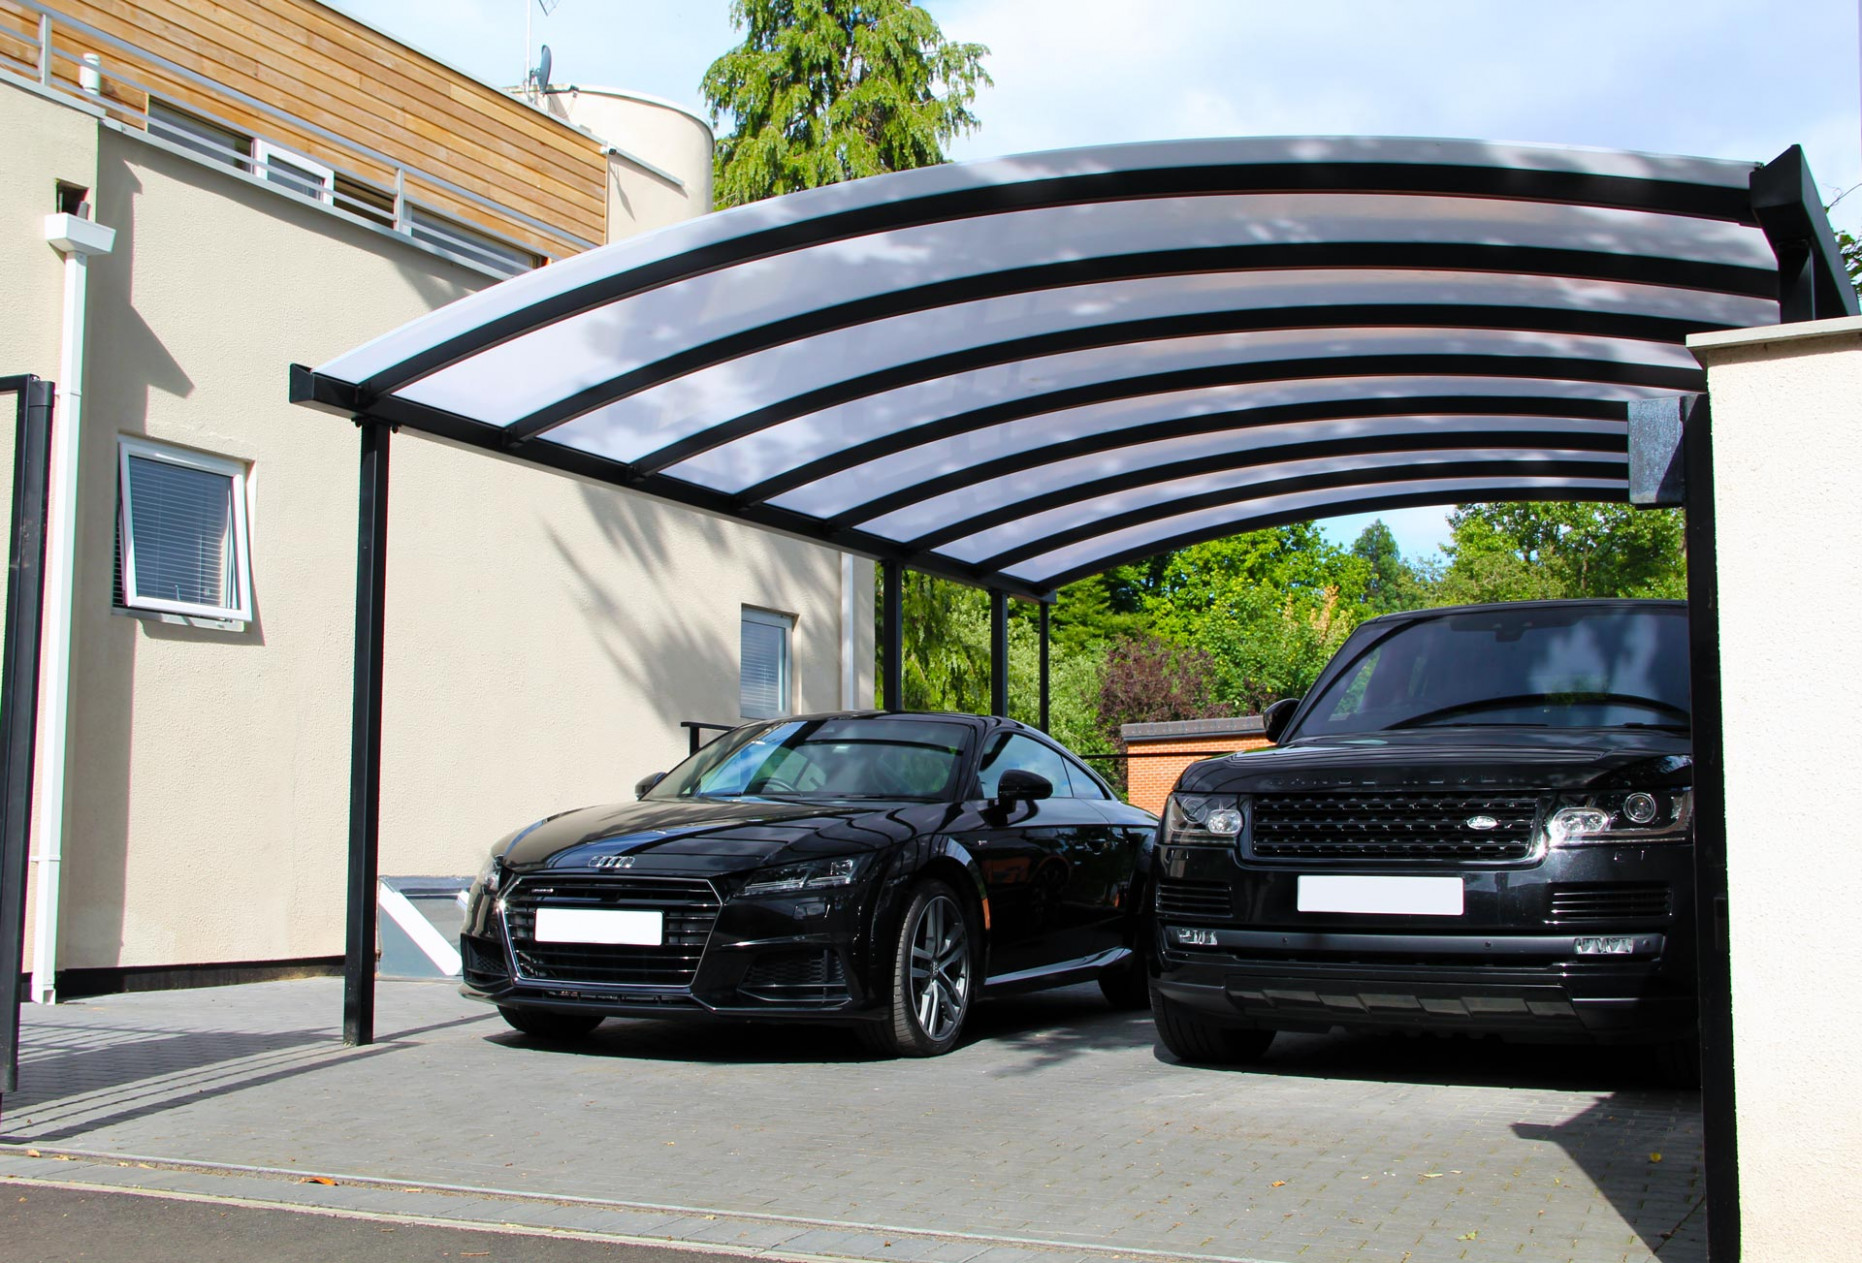 Car Port Canopy For Cars | Kappion Carports & Canopies Carports Canopy Images